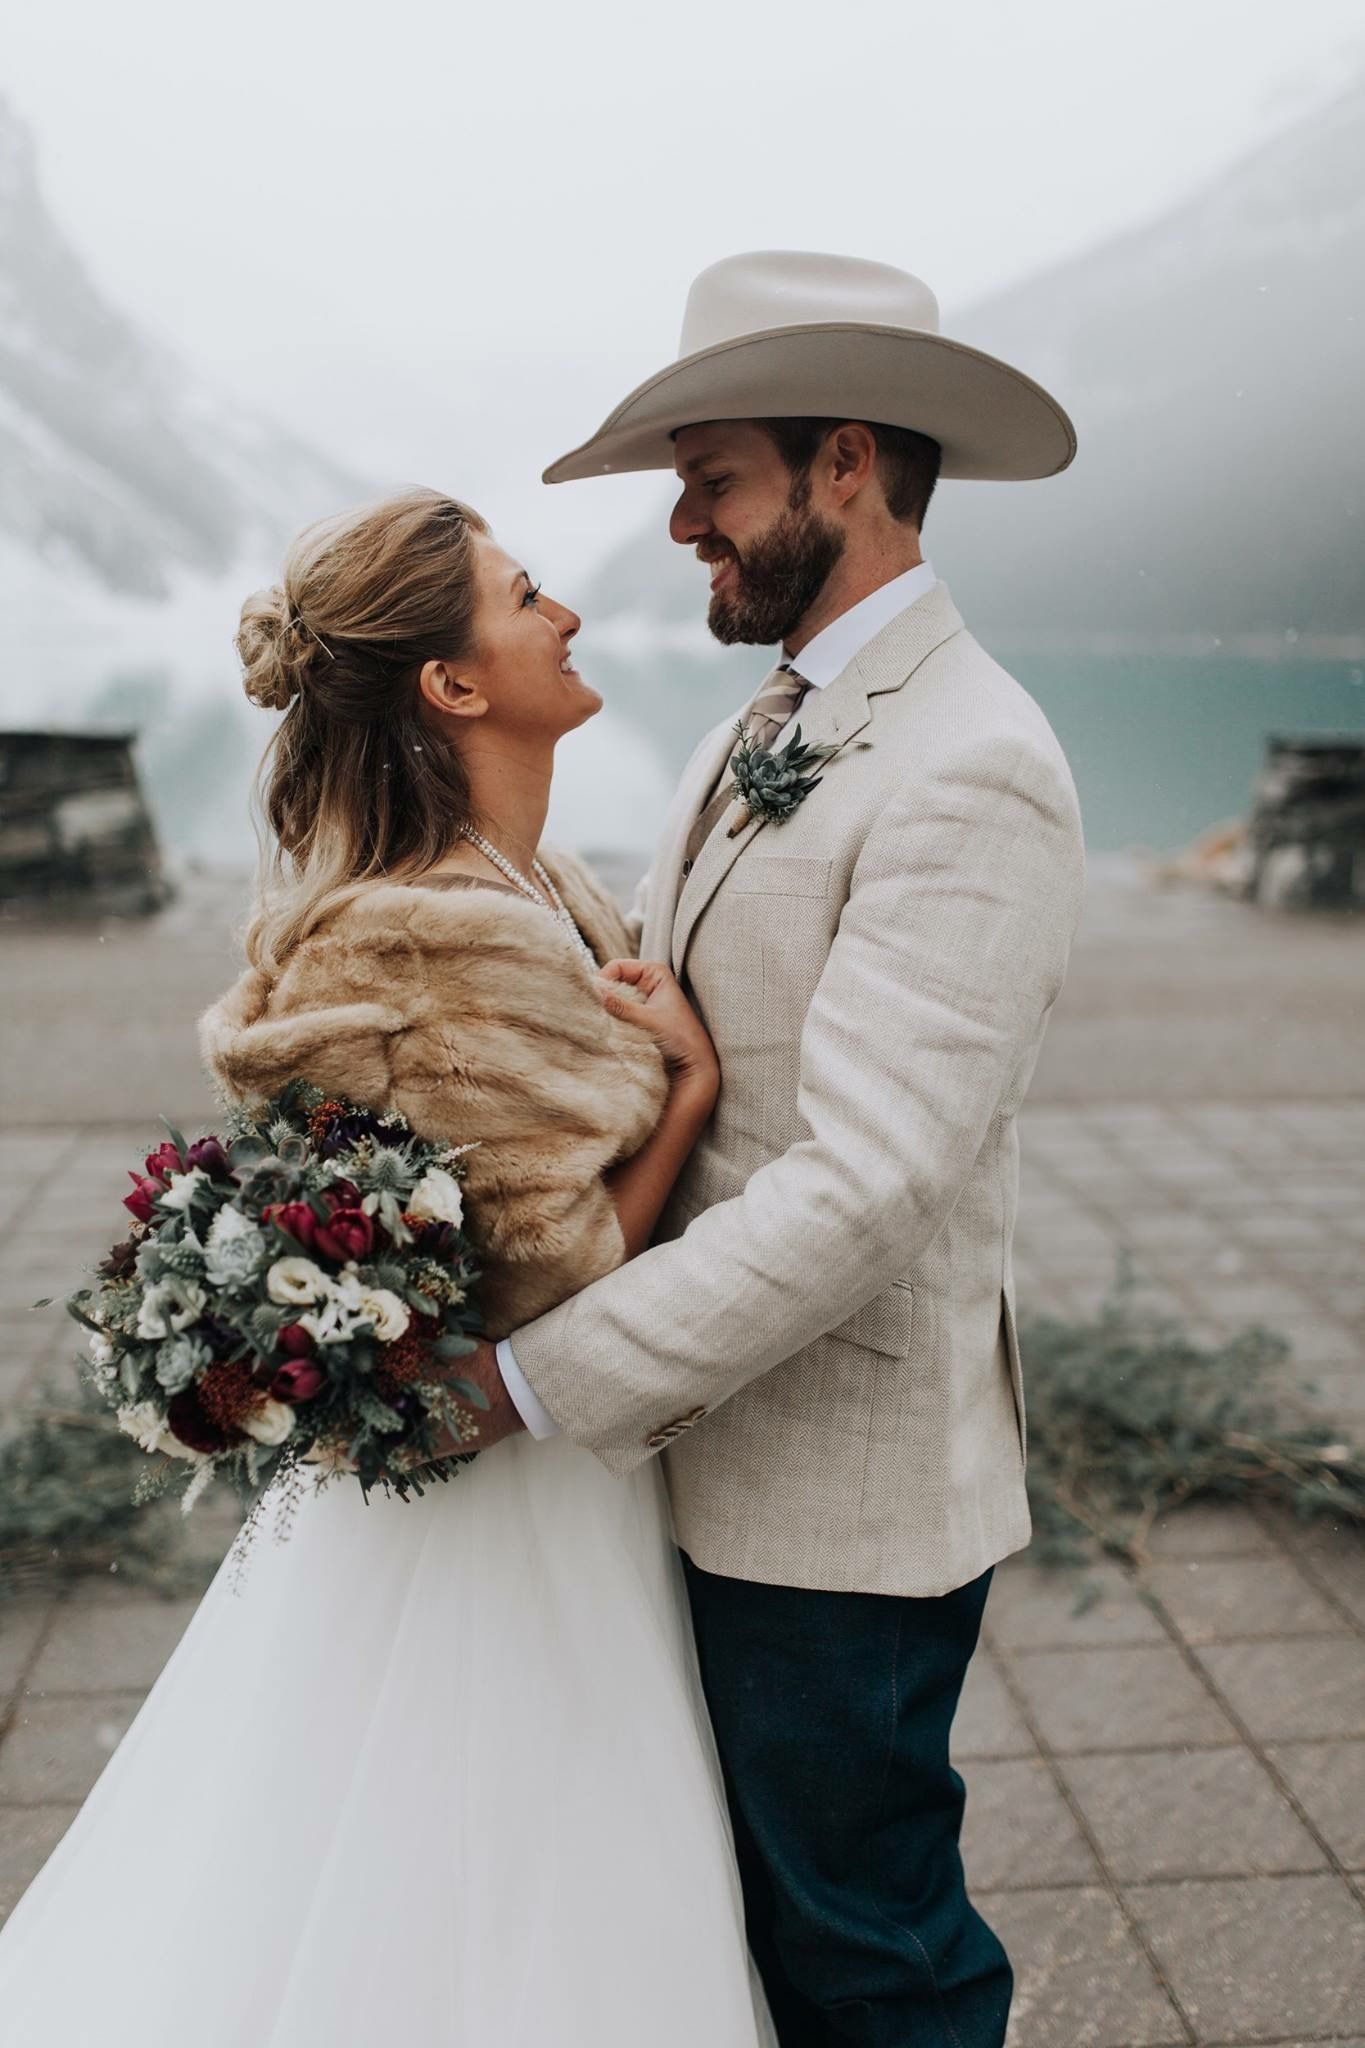 Kenneth And Lydia S Snowy And Elegant Wedding Day In Alberta Canada Winter Wedding Inspiration C Country Groom Attire Cowboy Wedding Attire Cowboy Wedding